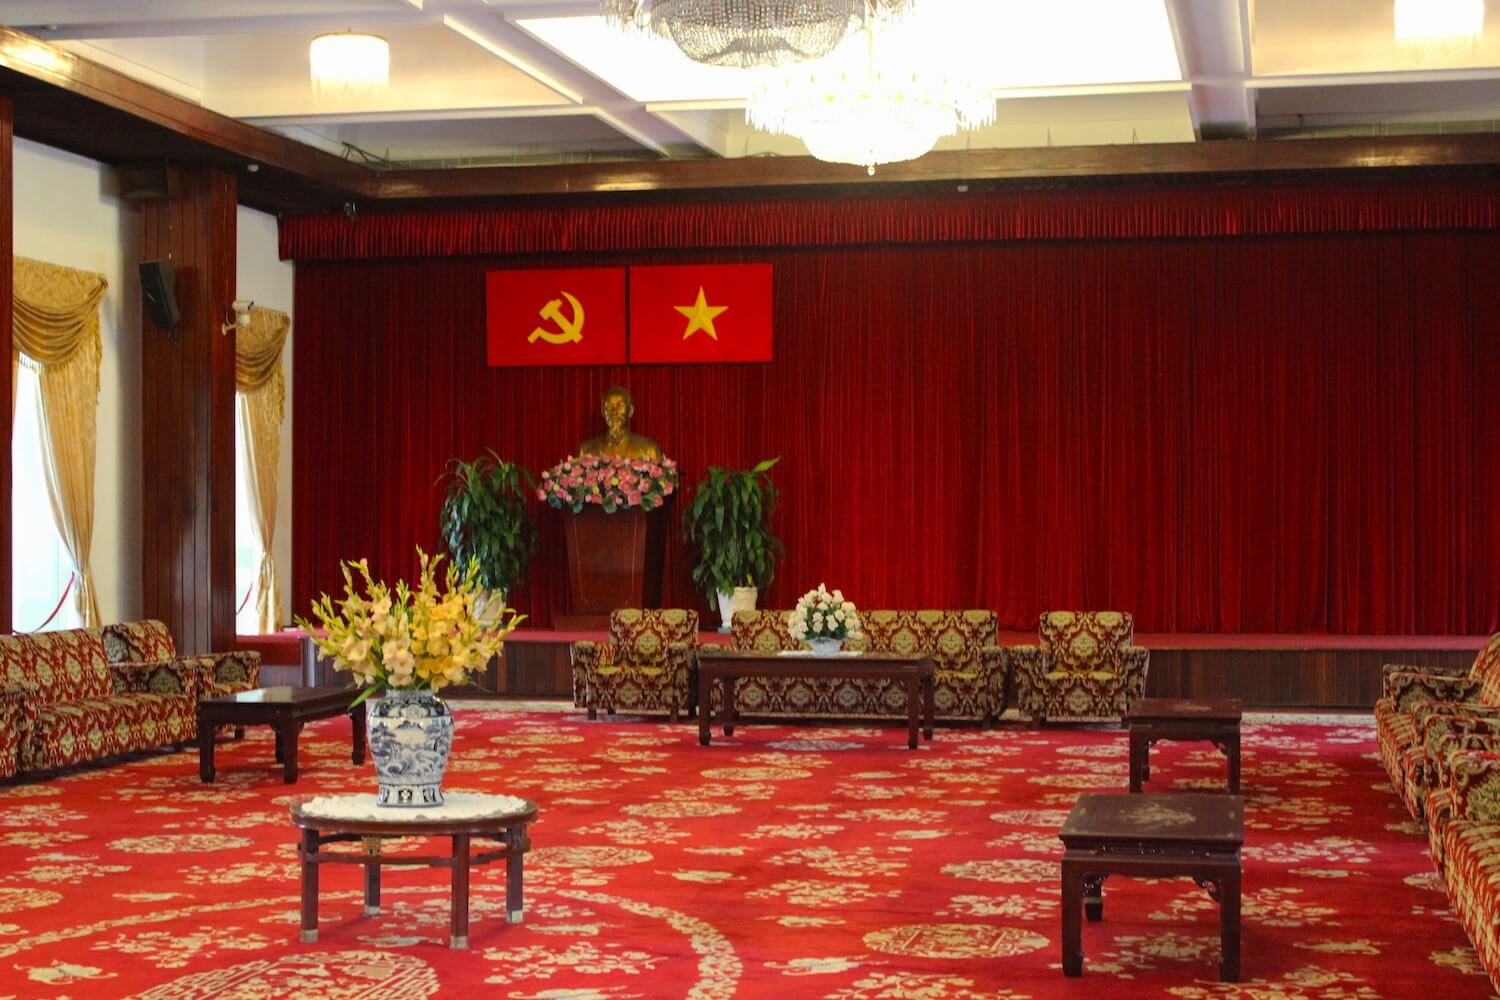 communist symbol in vietnam